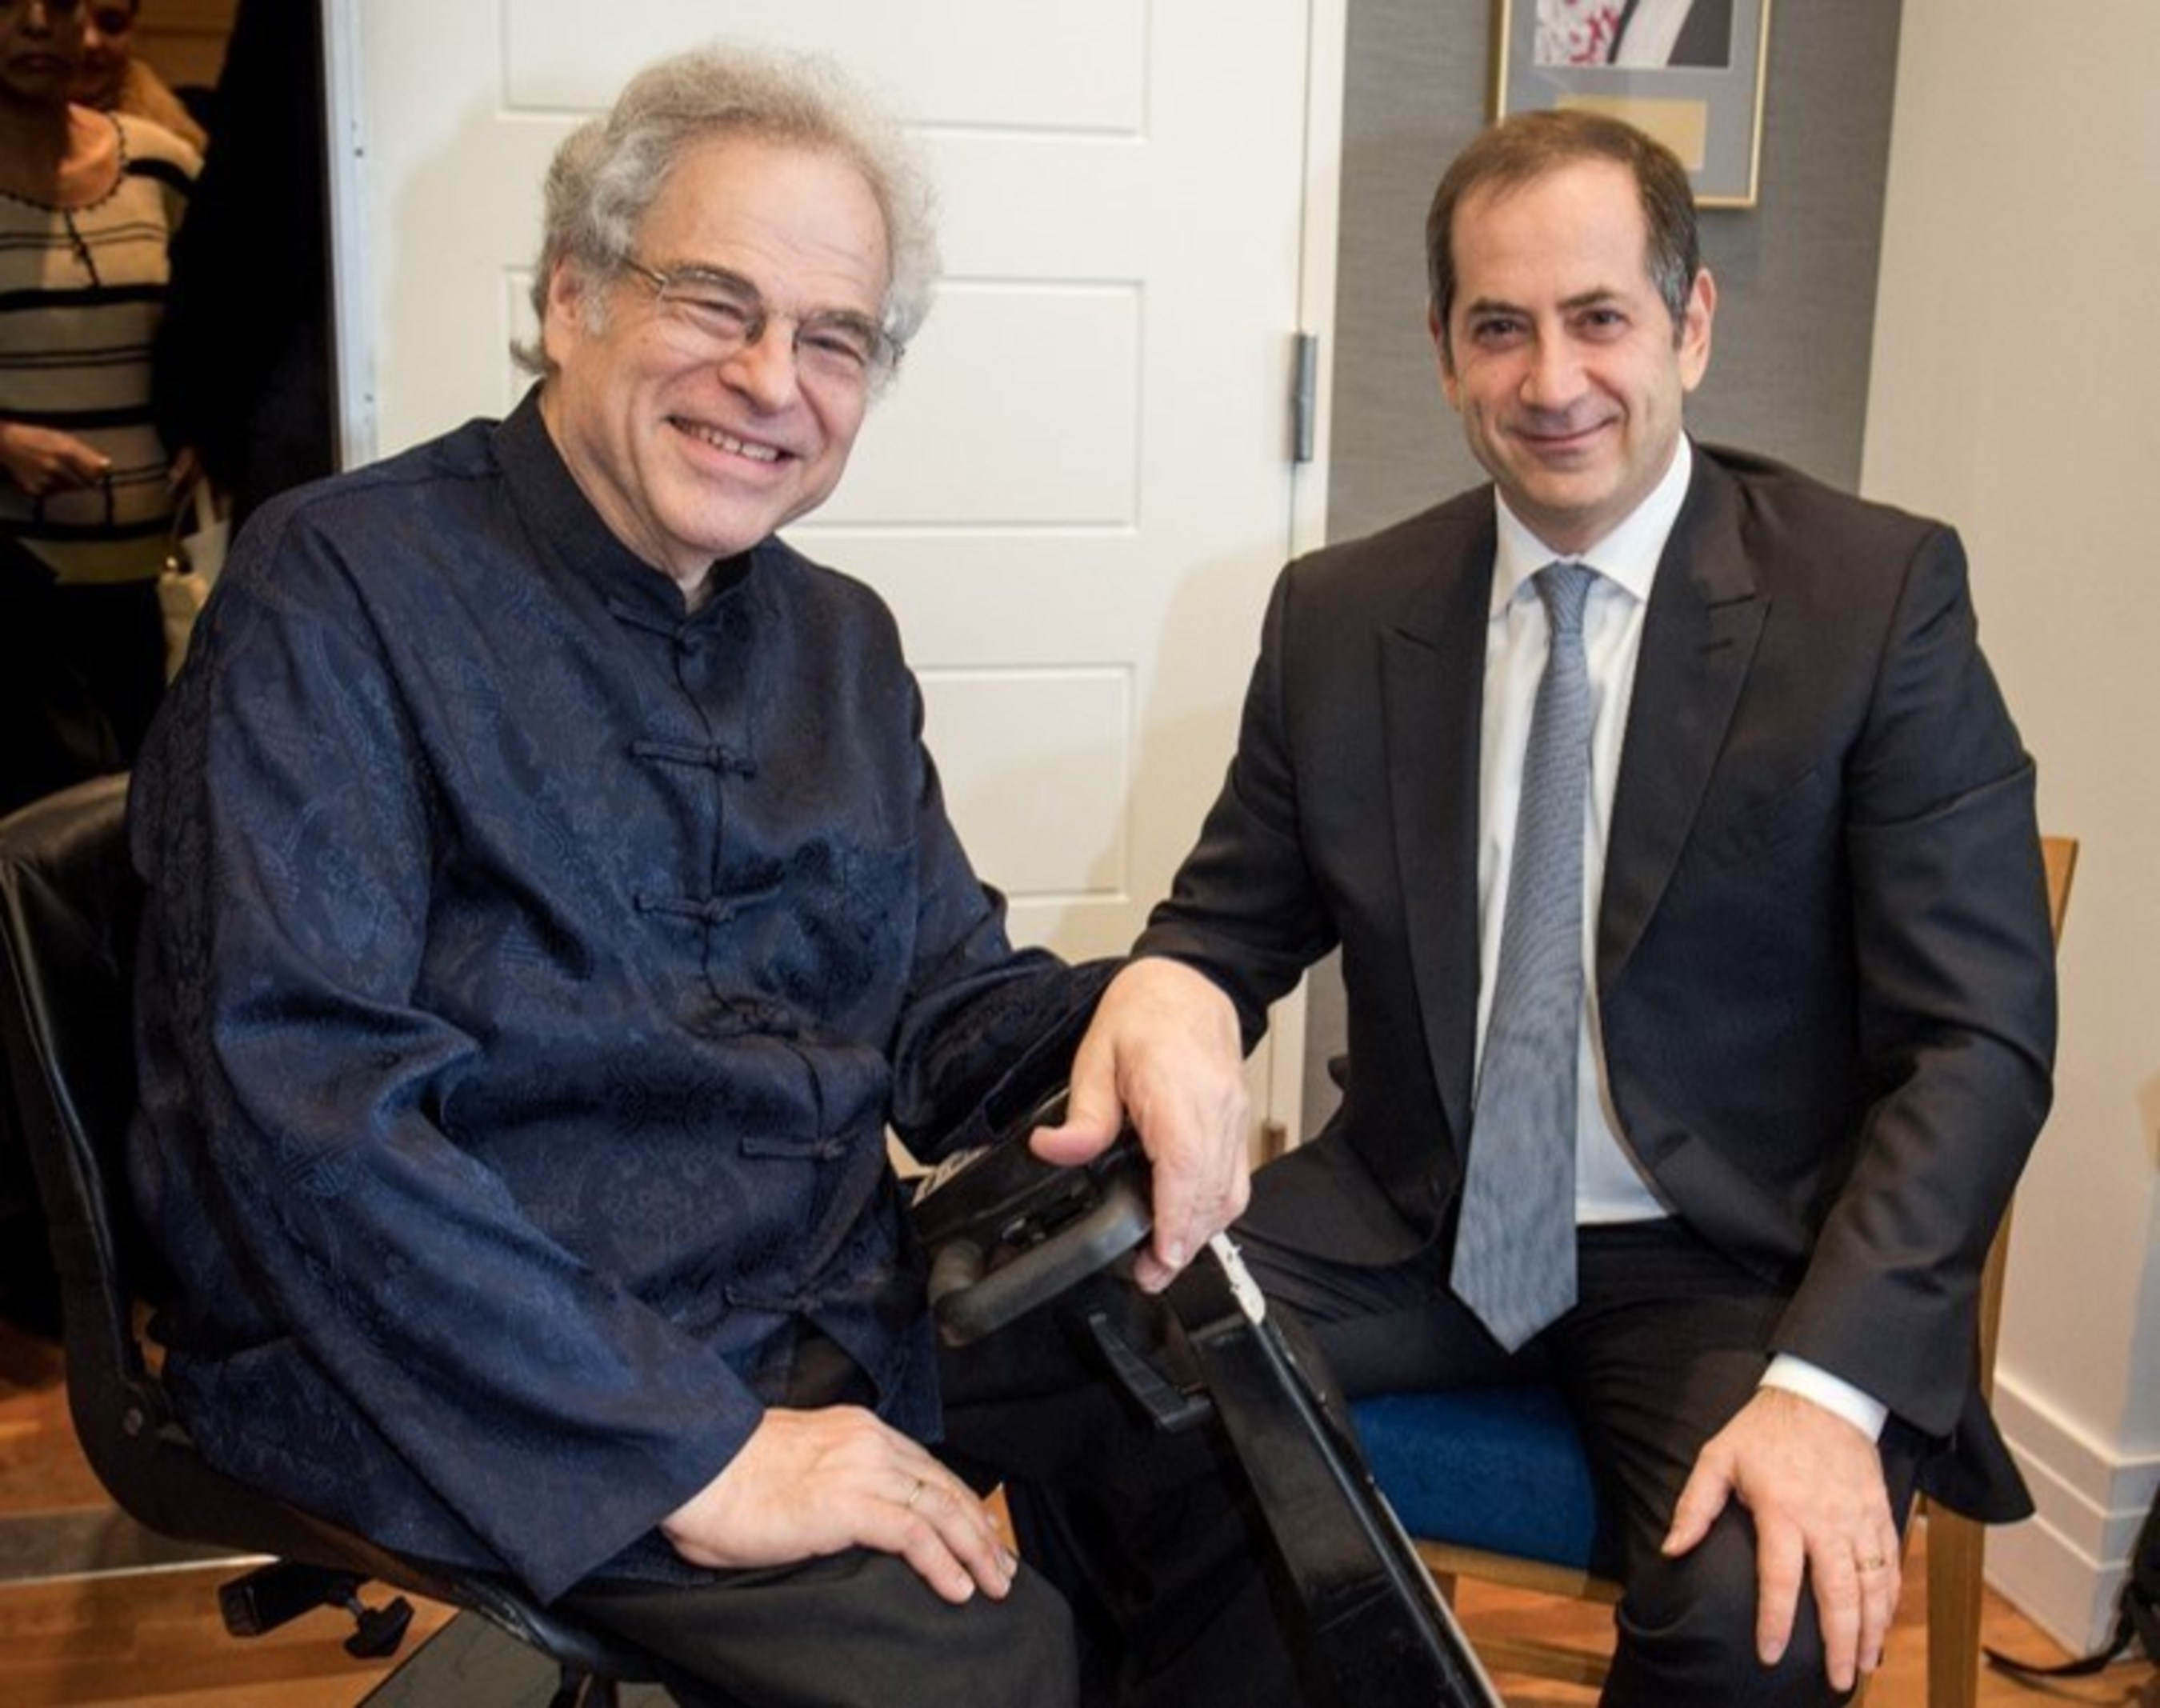 2016 Genesis Prize Laureate, Itzhak Perlman, meets Chairman and Co-Founder of the Genesis Prize Foundation, Stan Polovets